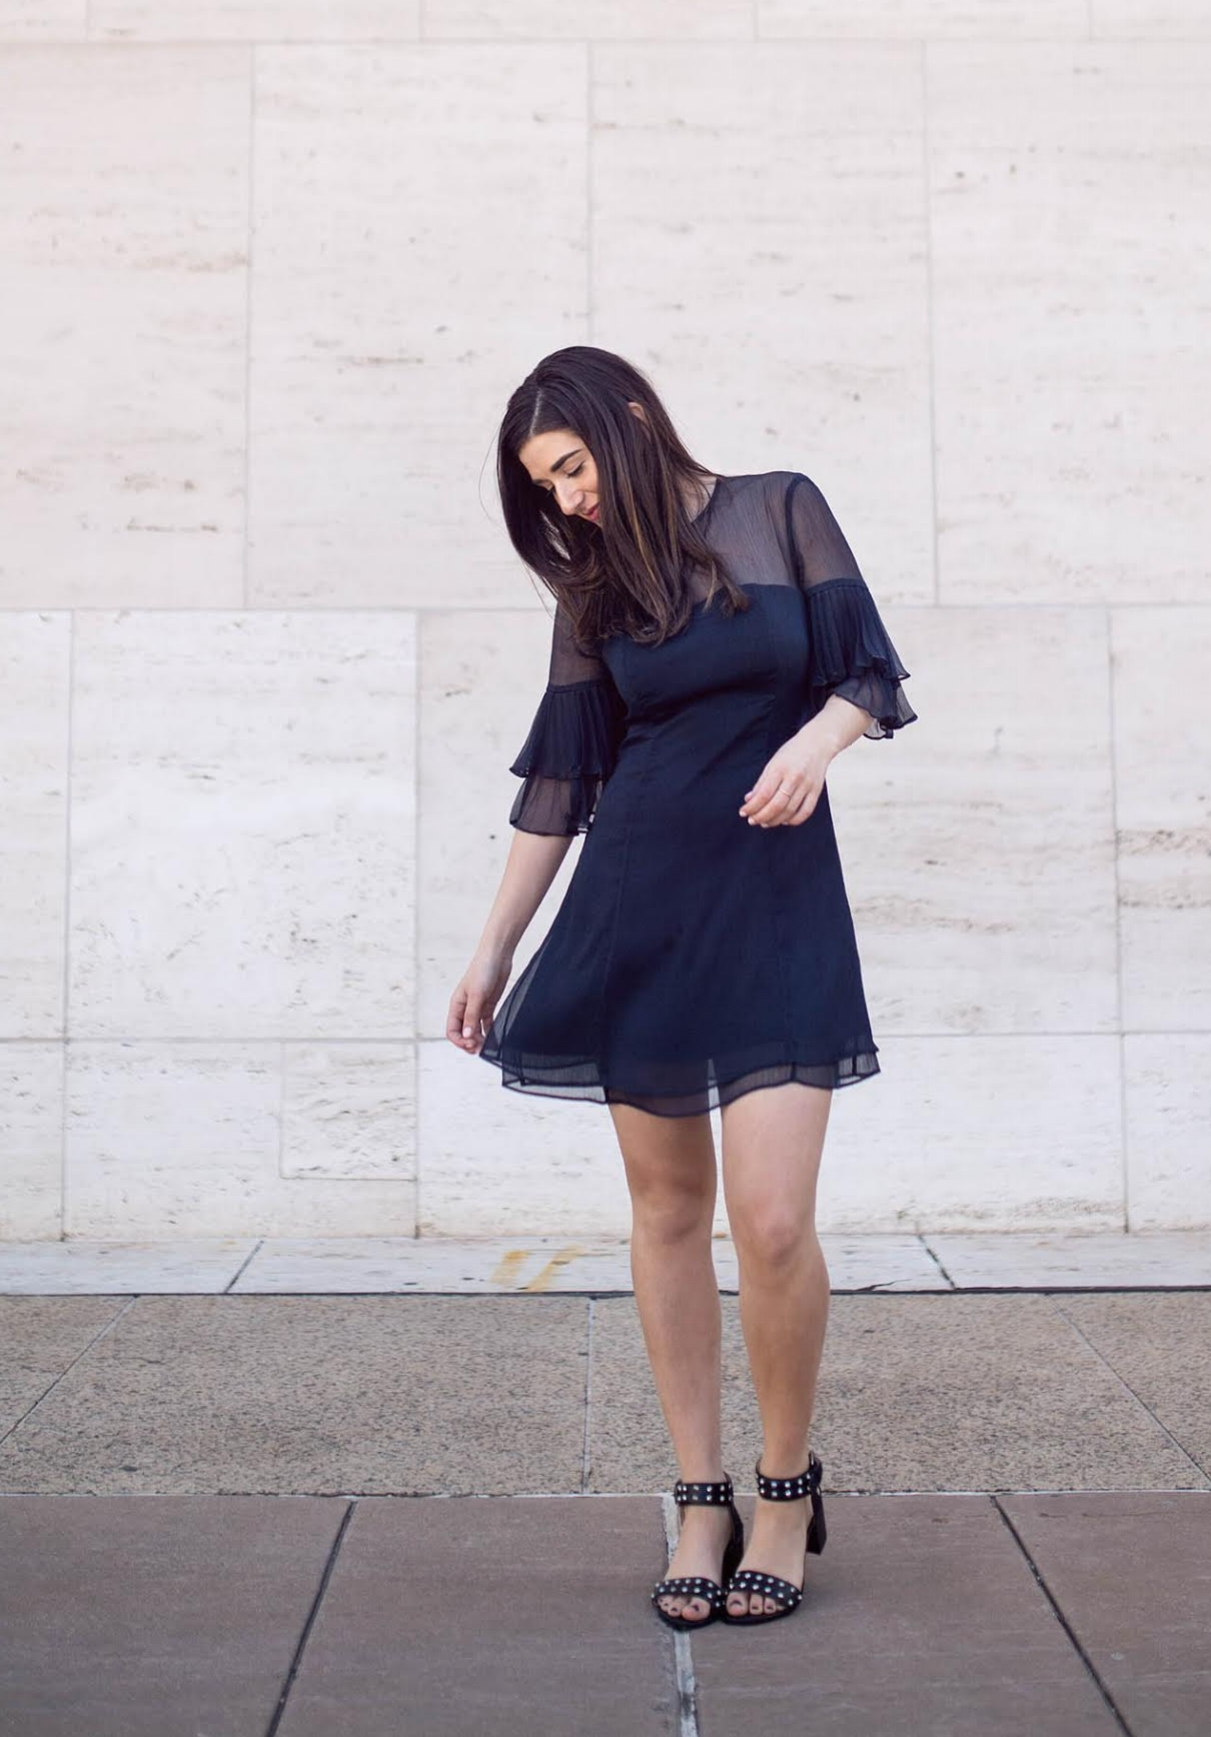 Lulus Ruffle Sleeve Dress The Best And Worst Fads of 2017 Esther Santer Fashion Blog NYC Street Style Blogger Outfit OOTD Trendy Pretty Feminine Navy Elegant Fancy Summer Look Sheer Black Studded Sandals Straight Hair Beauty Photoshoot Girl Women Shop.jpg